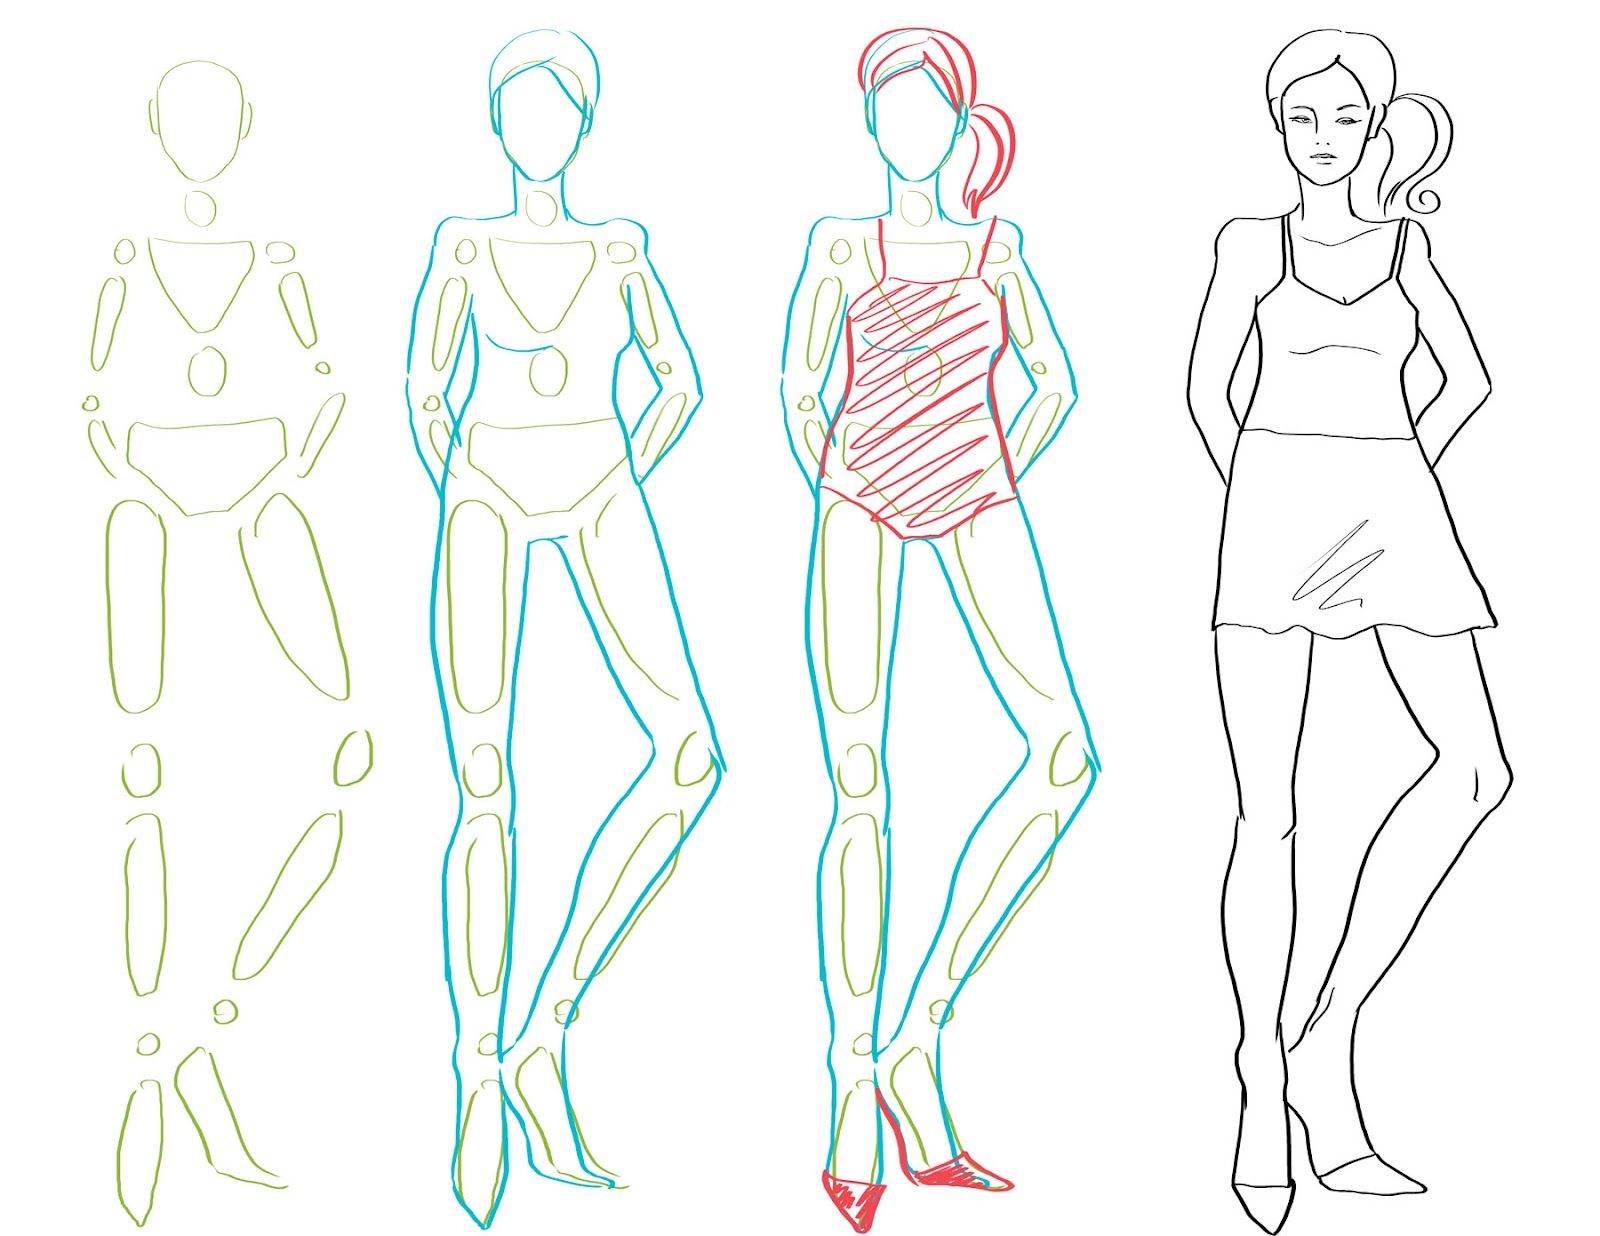 How To Draw Fashion Figures In Simple Steps Look What Simple Shapes Can